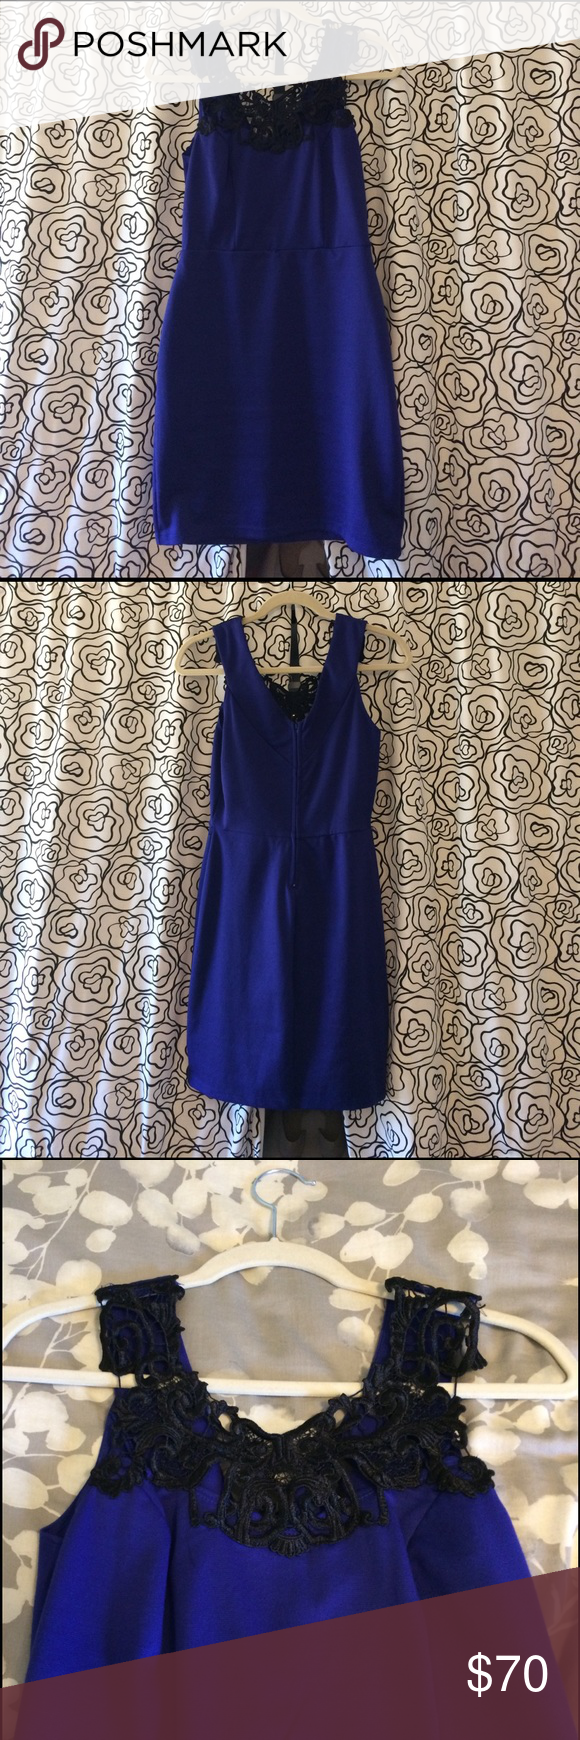 Blue Lace Detail Dress From Von Maur Flattering Blue Dress With Black Lace Detailing On Top Falls To Mid Thigh Lace Detailed Dress Wish Dresses Clothes Design [ 1740 x 580 Pixel ]